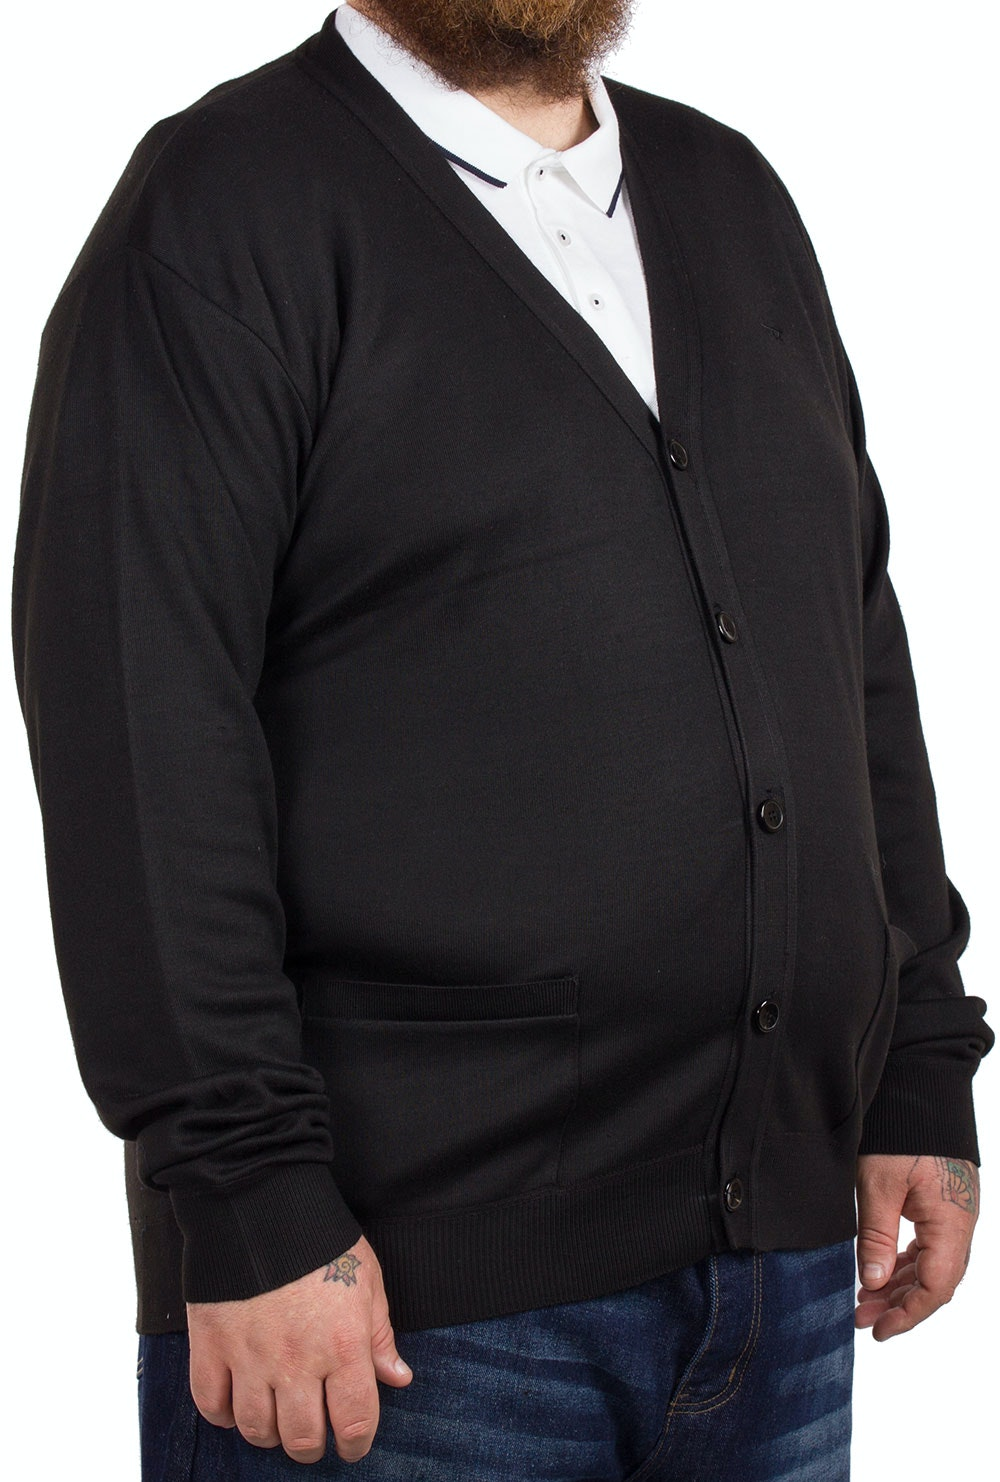 D555 Marsh Black Buttoned Cardigan